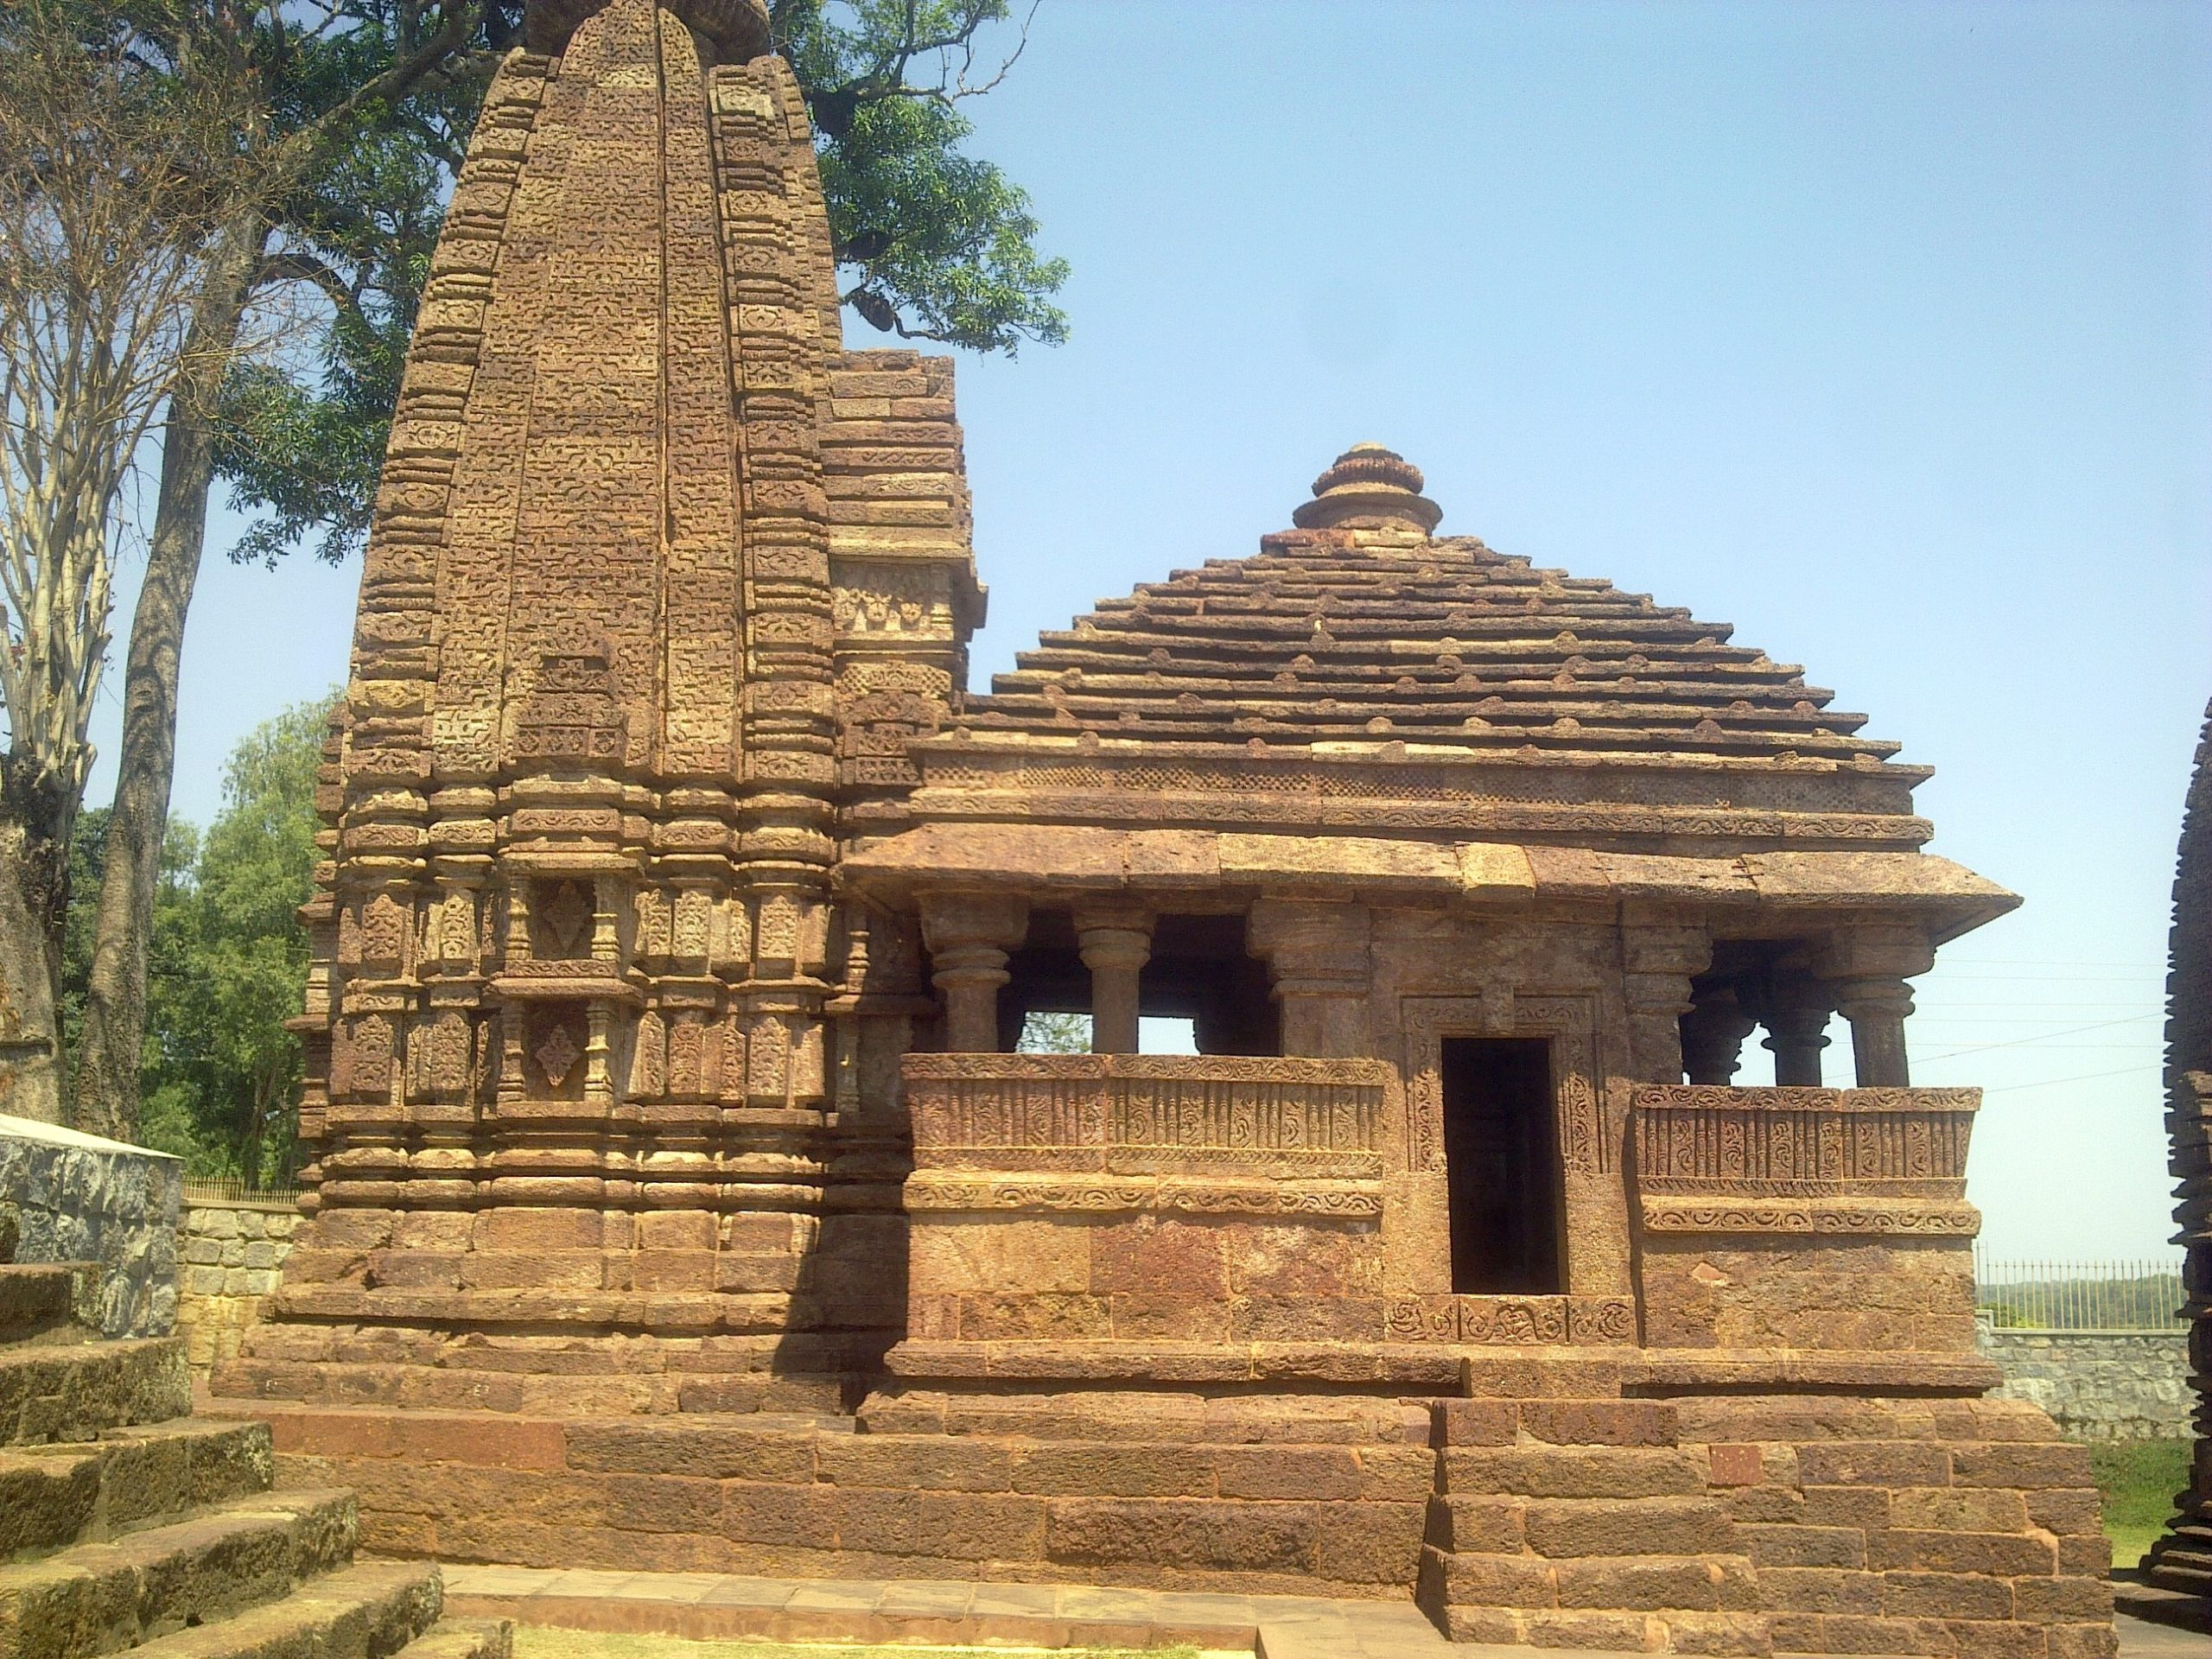 Place to Visit In Amarkantak-Temples from the Kalachuri Period